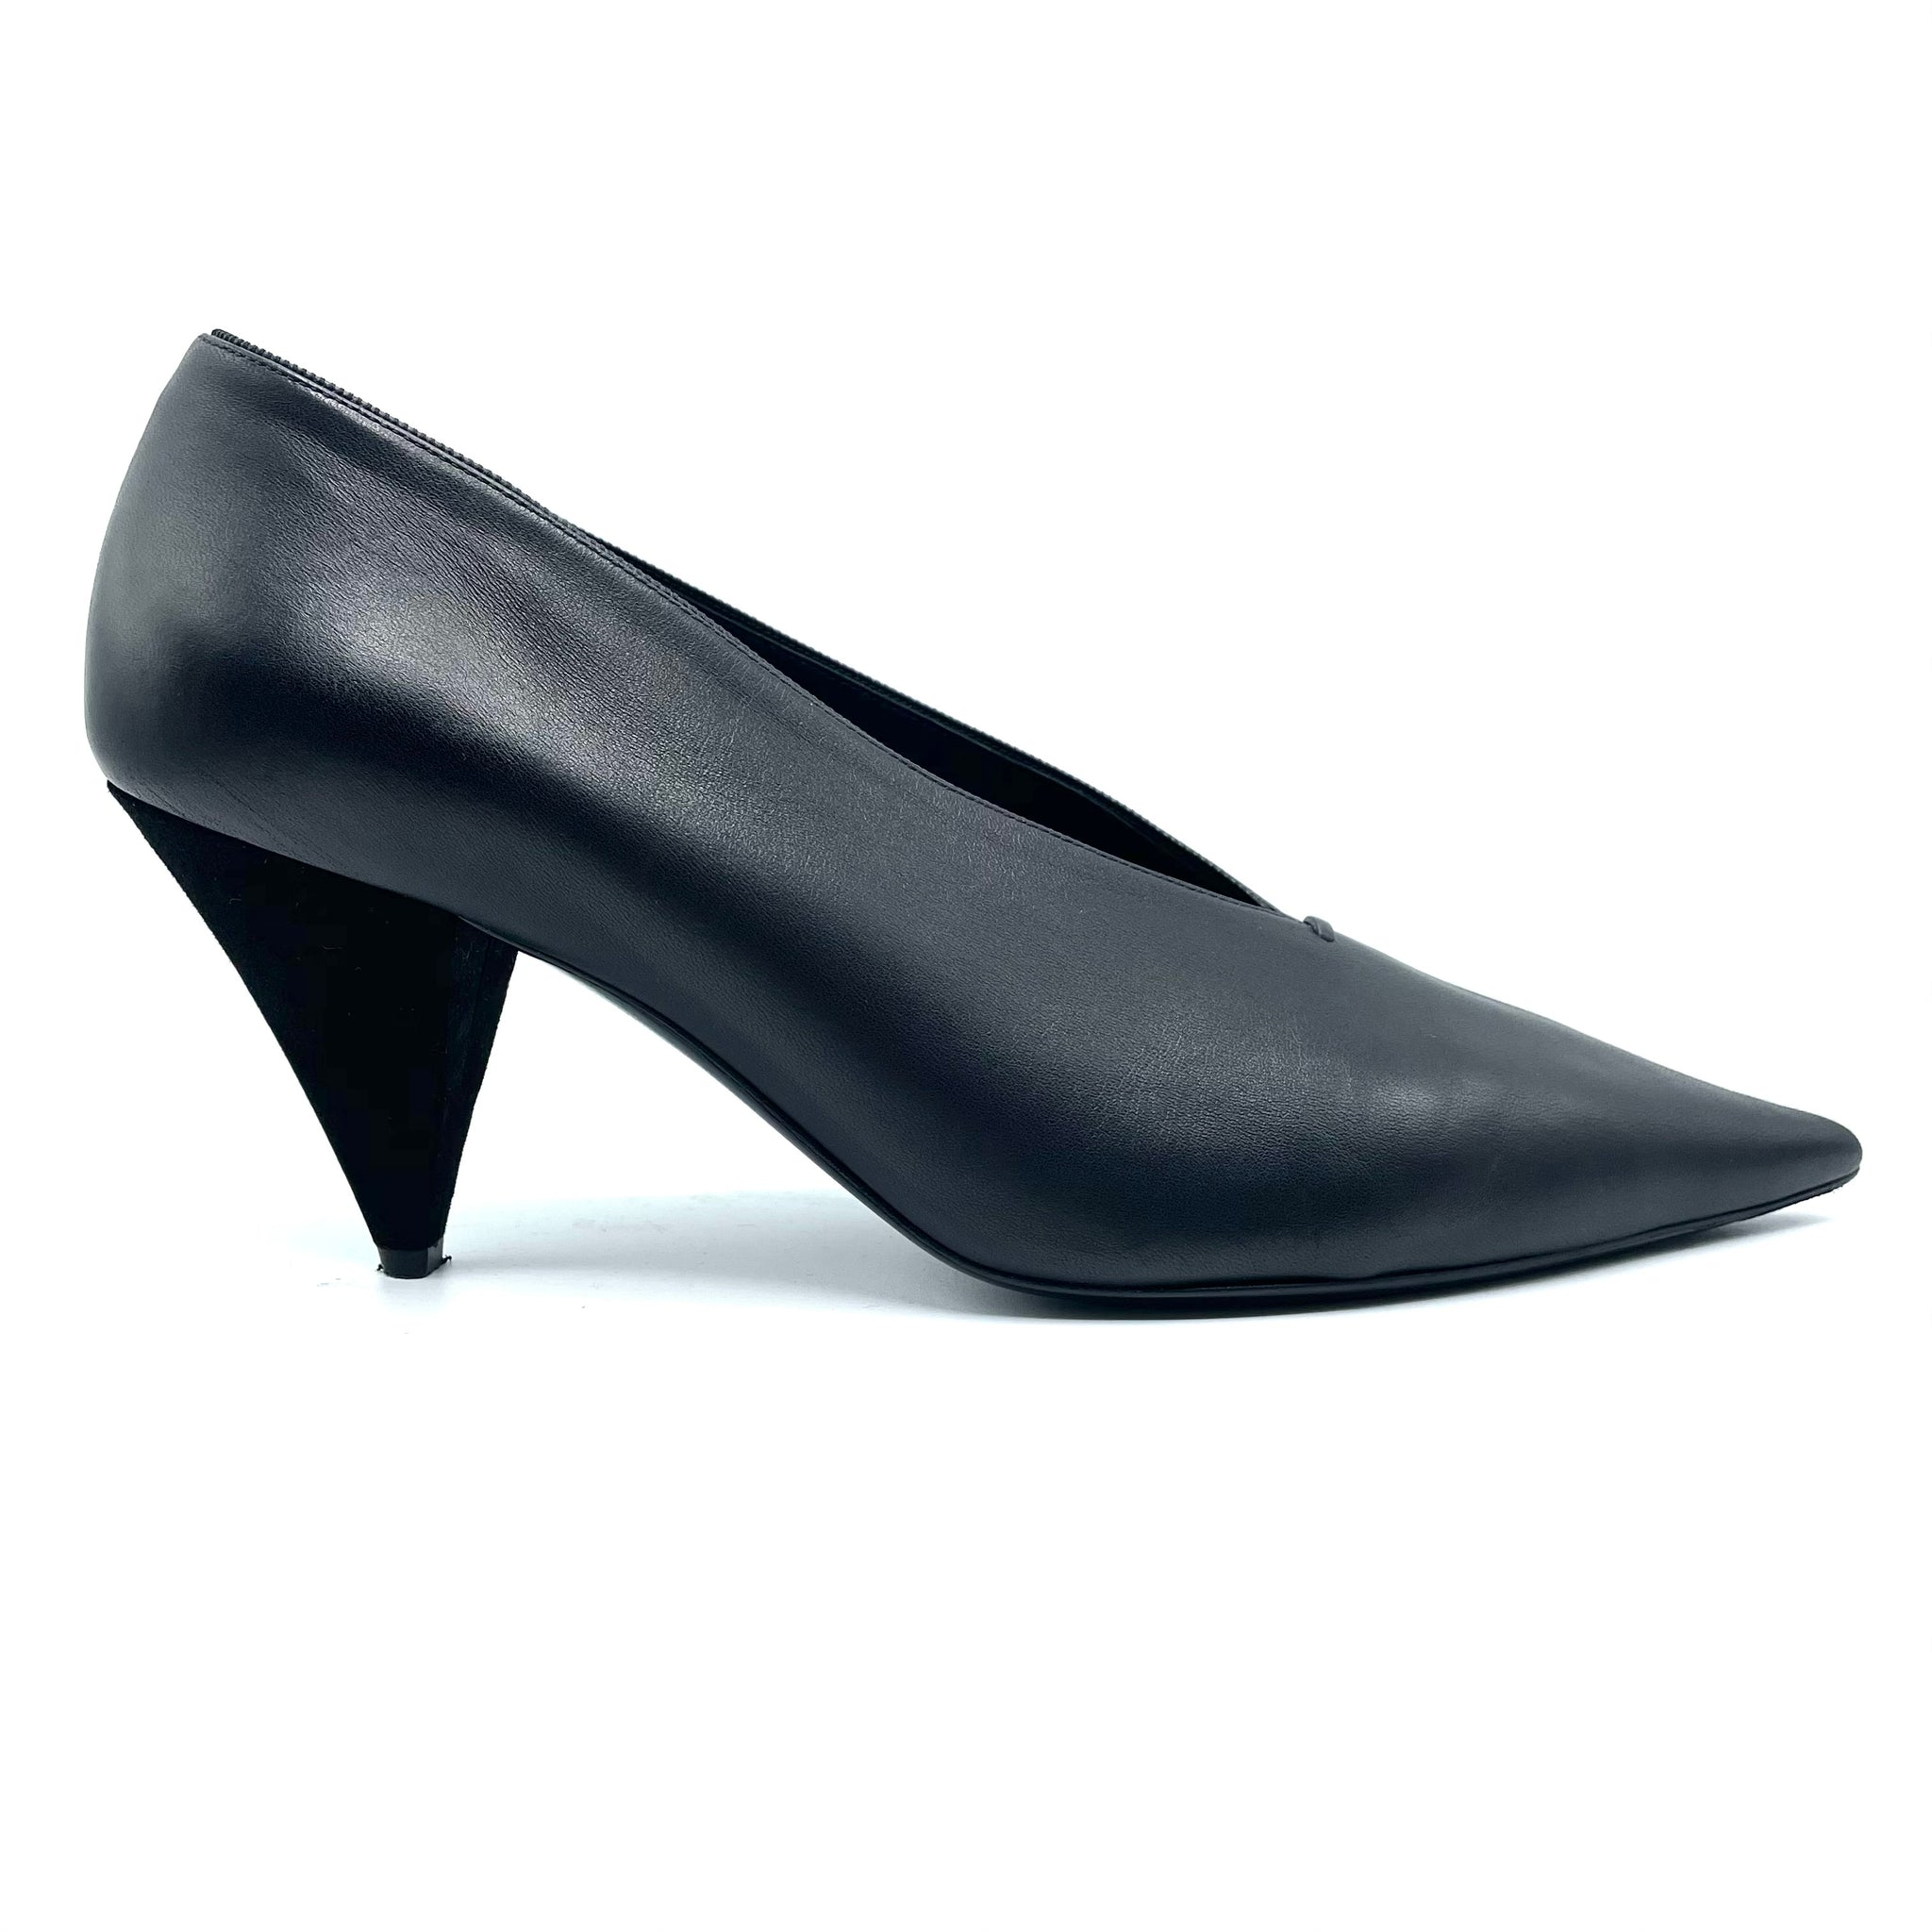 Celine Black Leather V Neck Pointed Toe Pumps